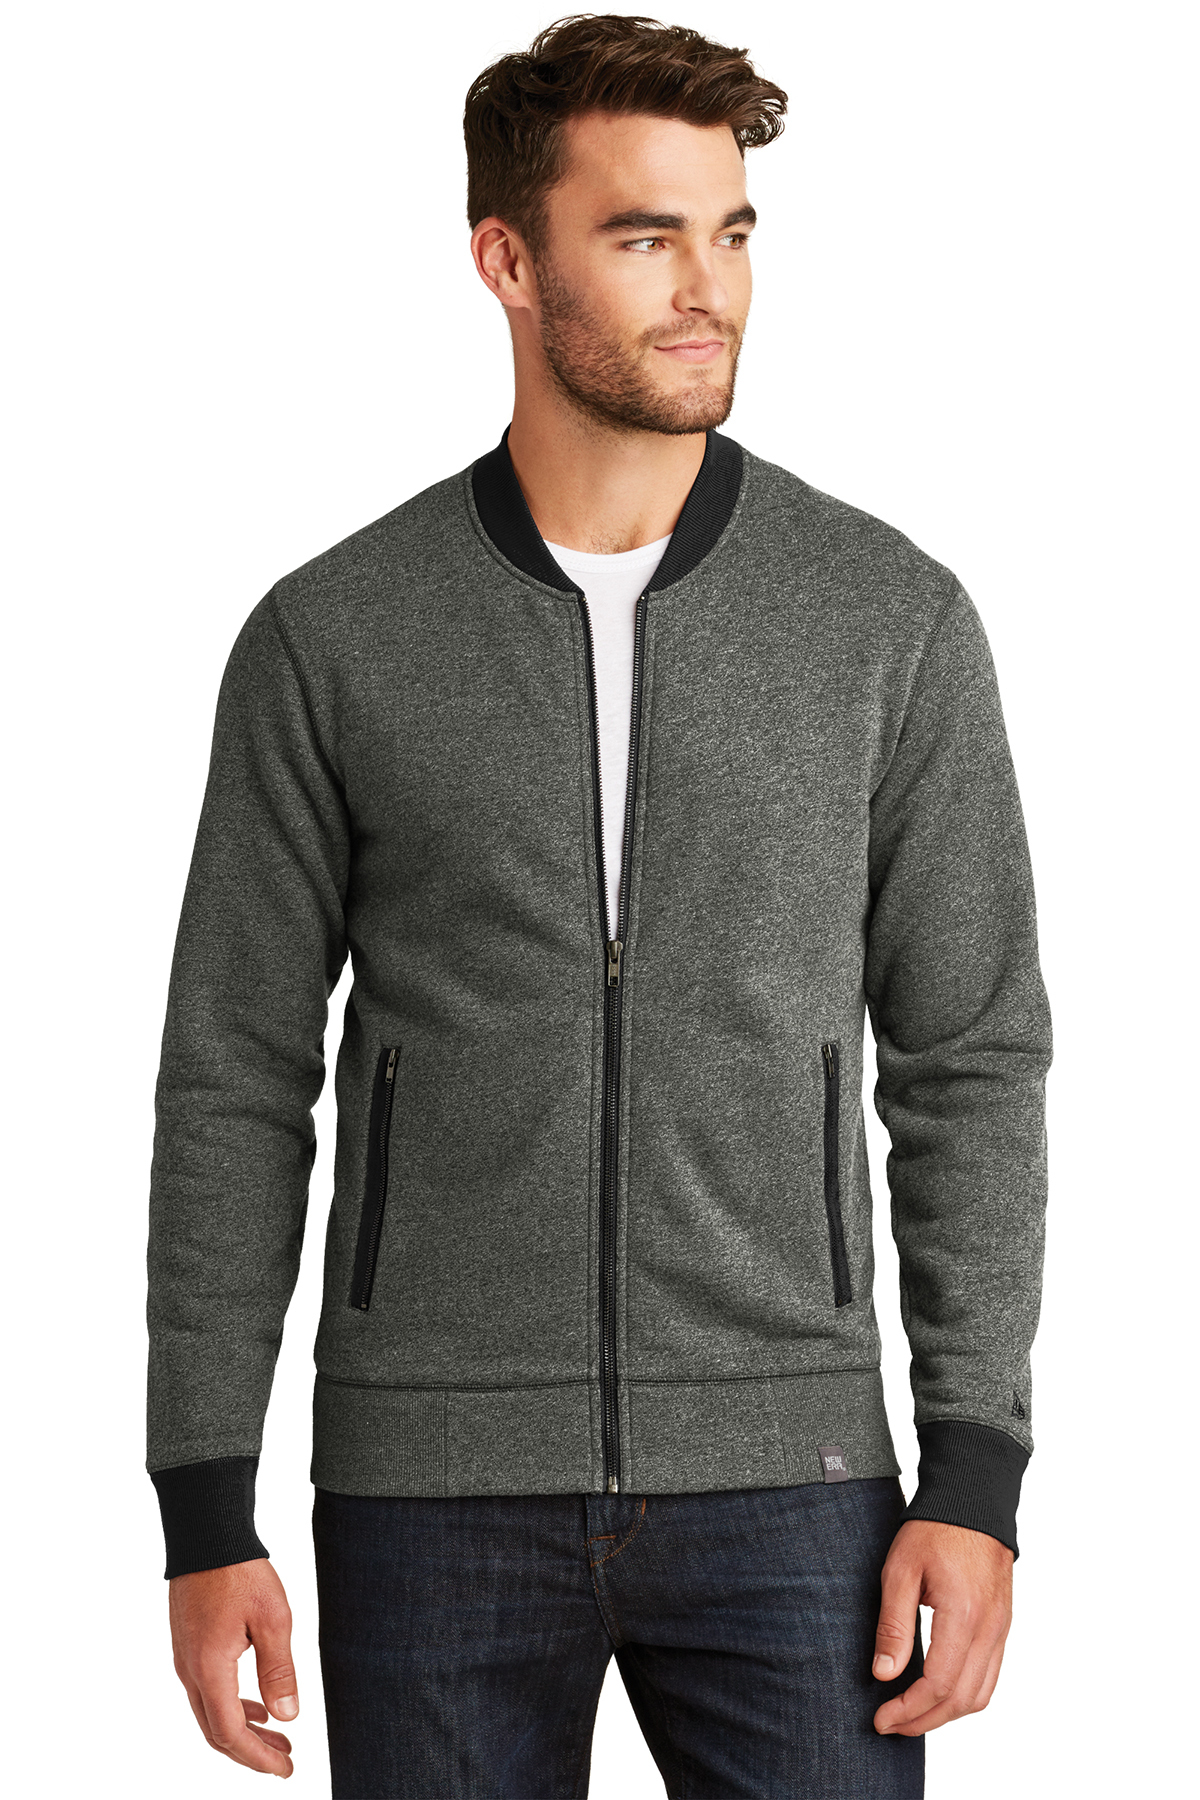 New Era NEA503 - Men's French Terry Baseball Full Zip Jacket